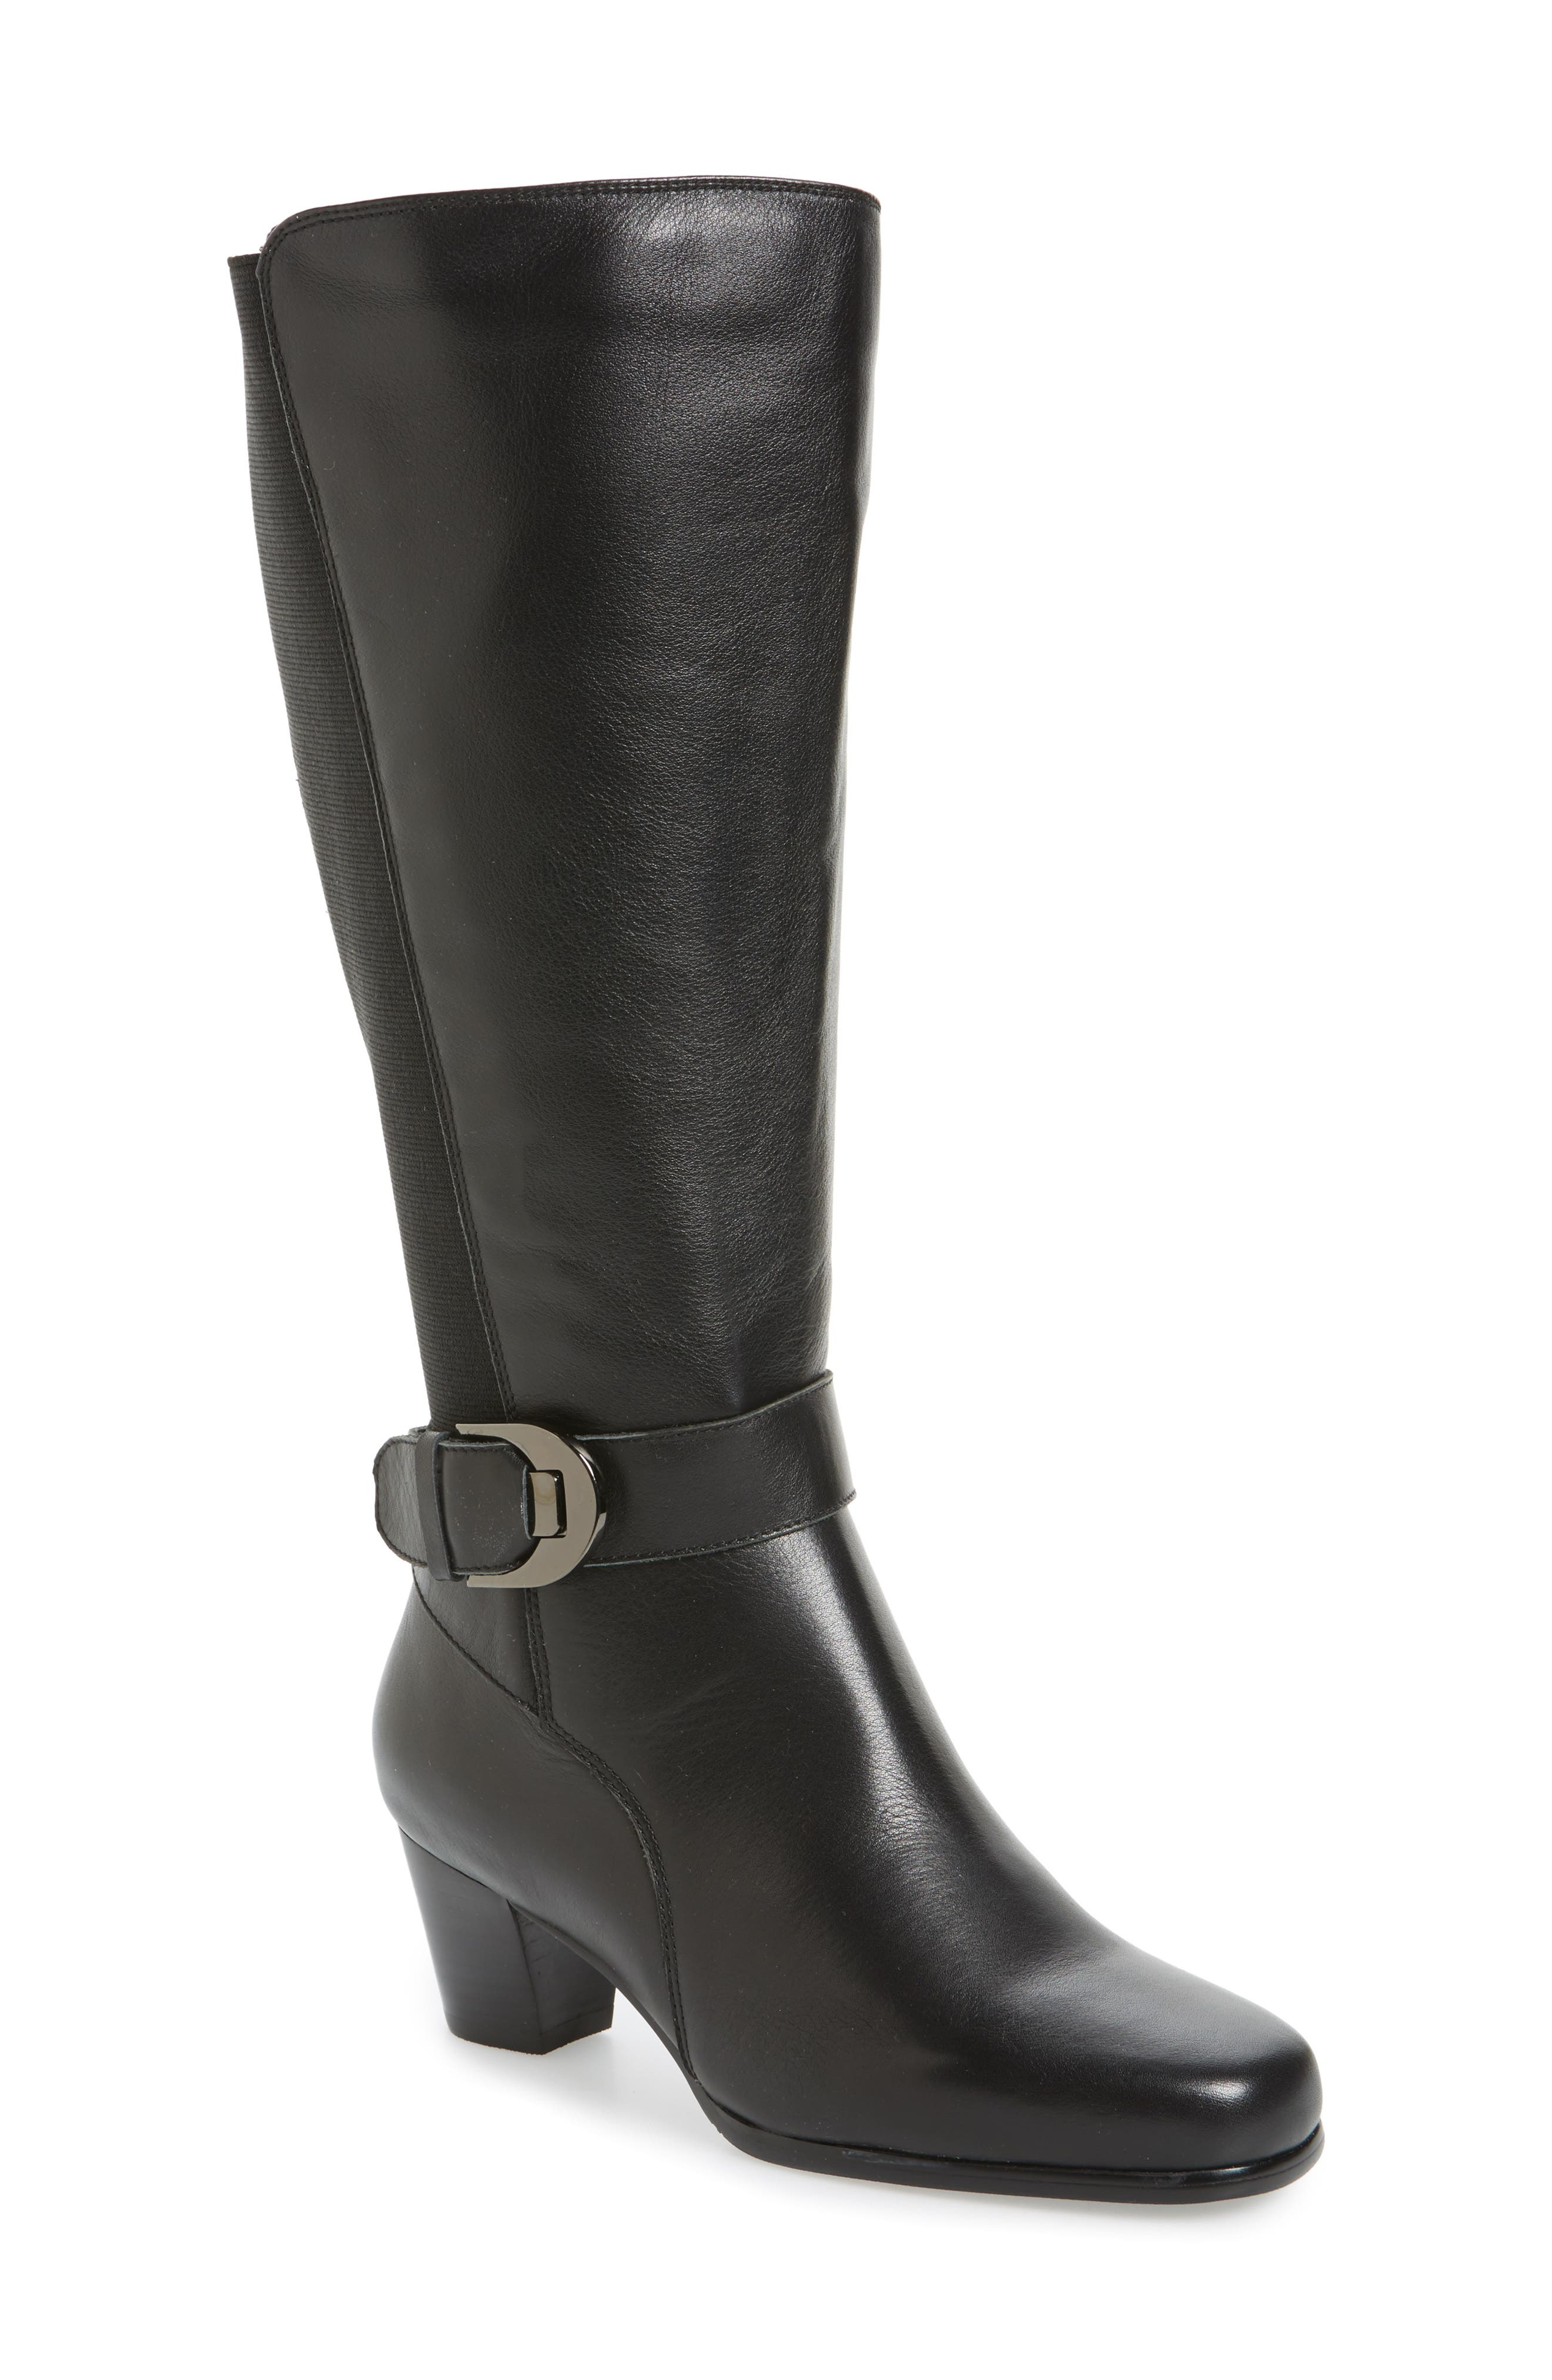 David Tate Bonita 18 Boot- Black